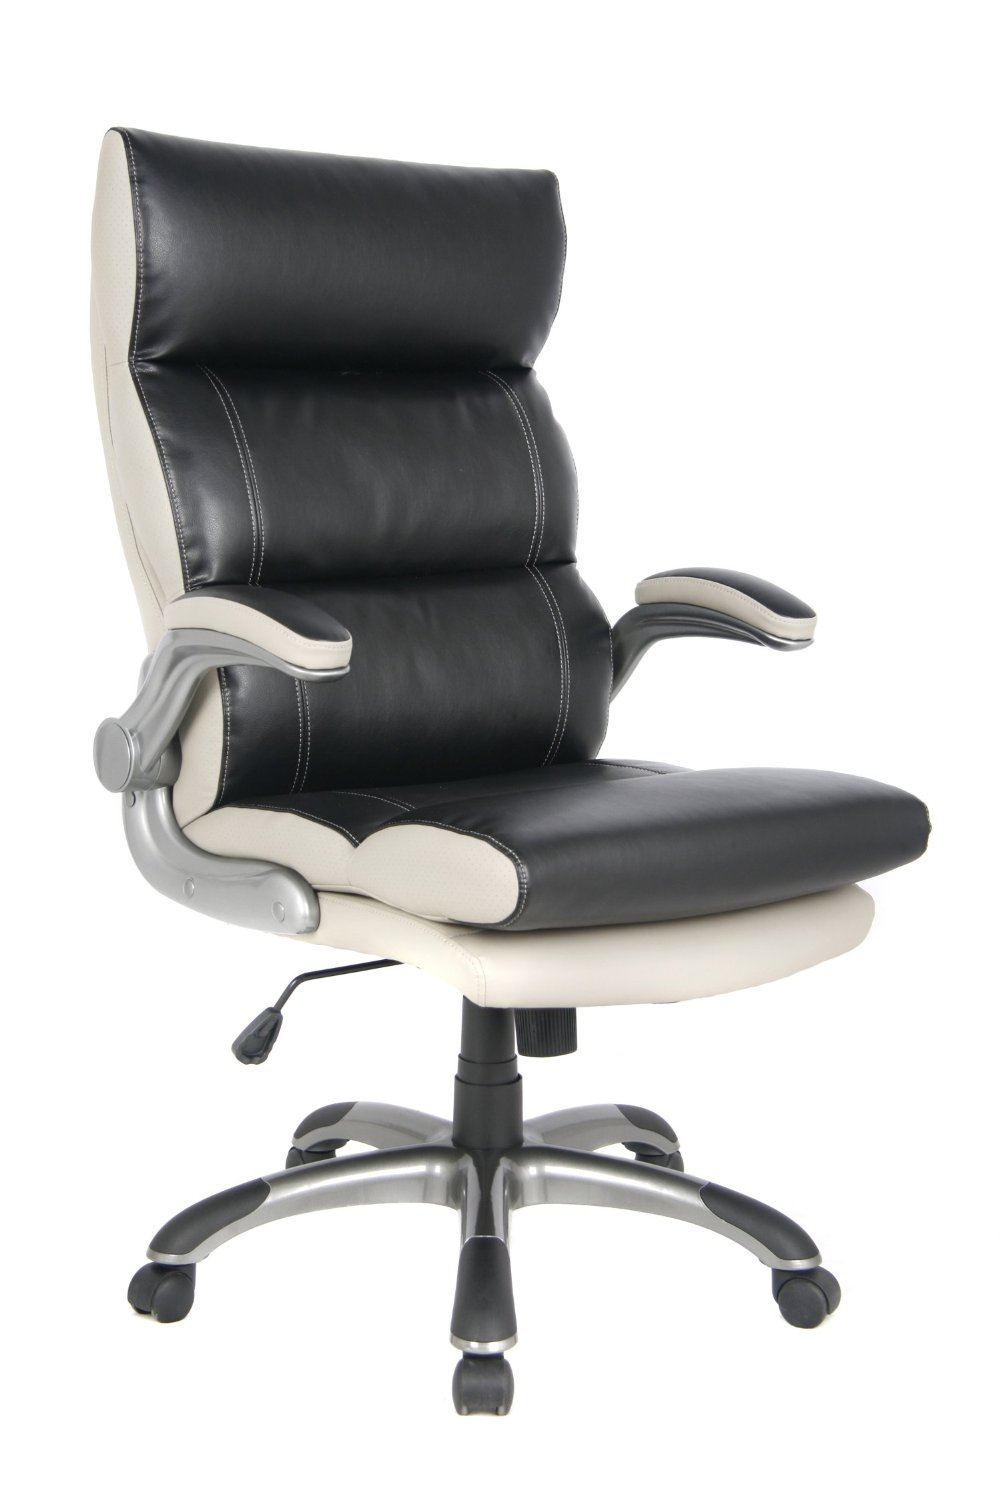 Viva Office Viva0502L1 Executive Chair With Ergonomic Options Best Recliners